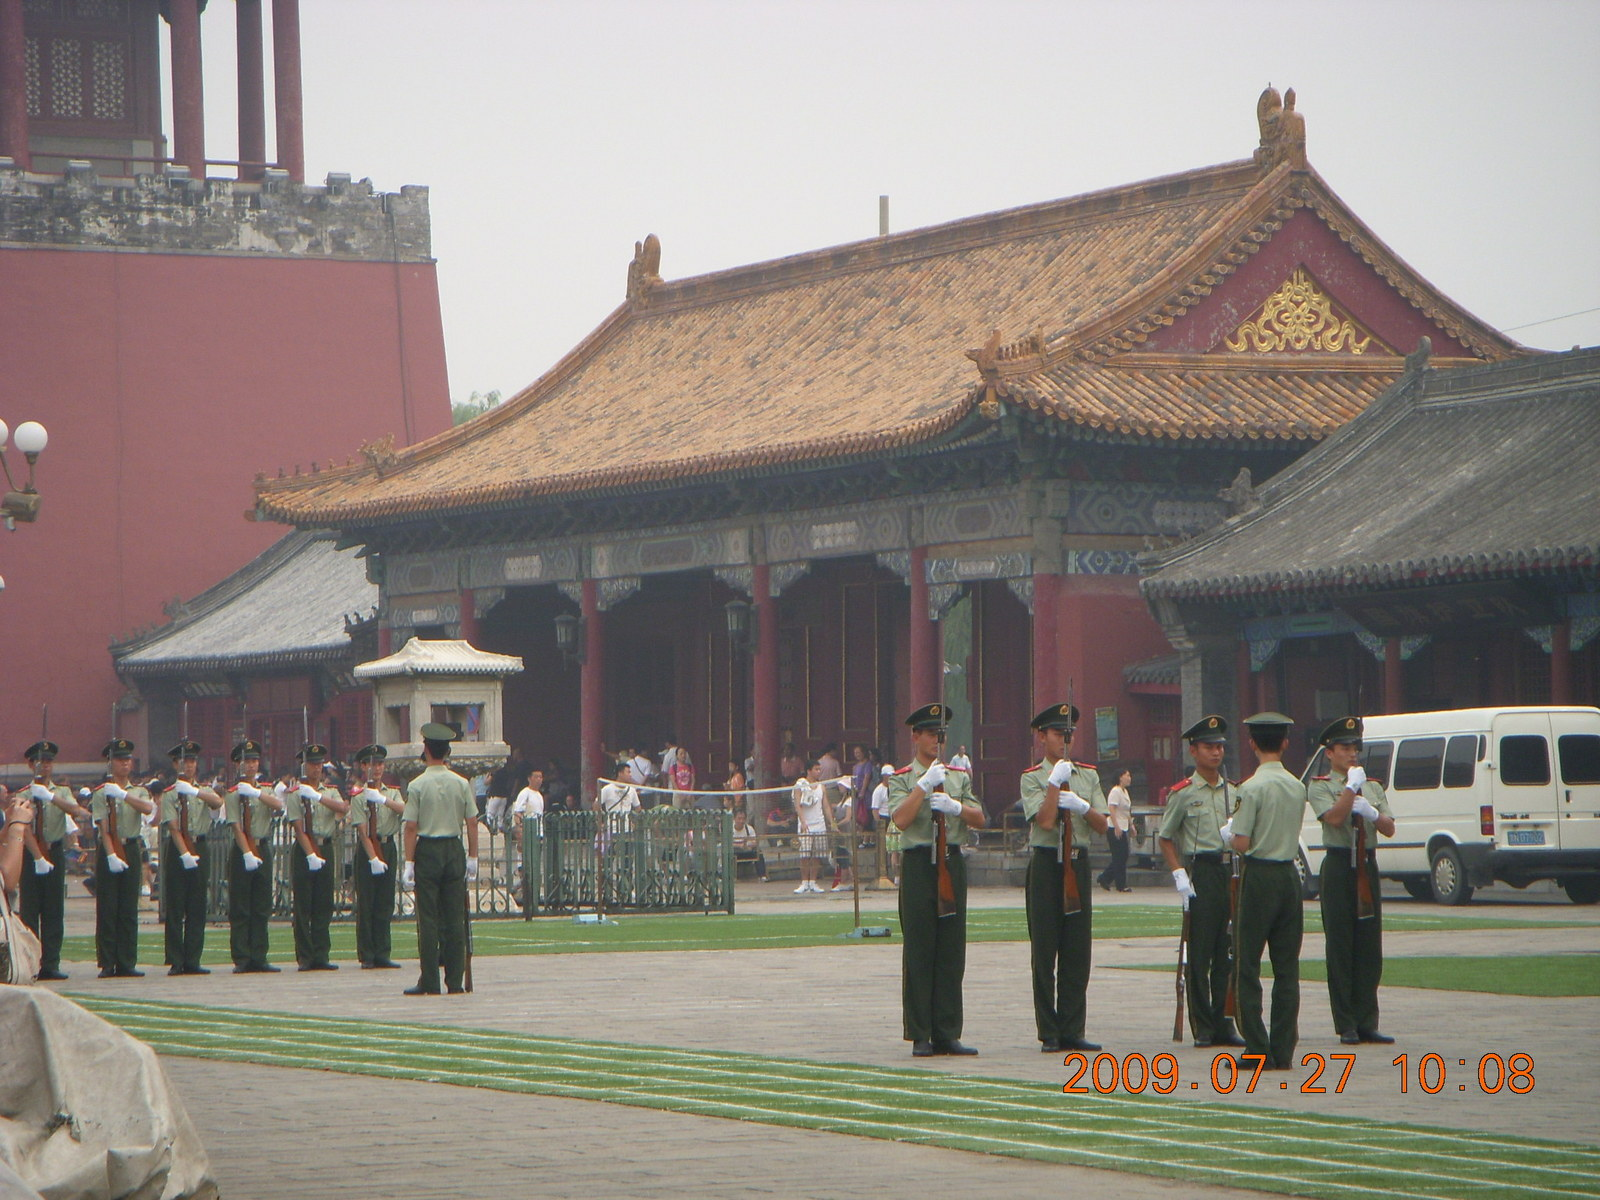 China eclipse - Beijing - Tianenman Square - police guard